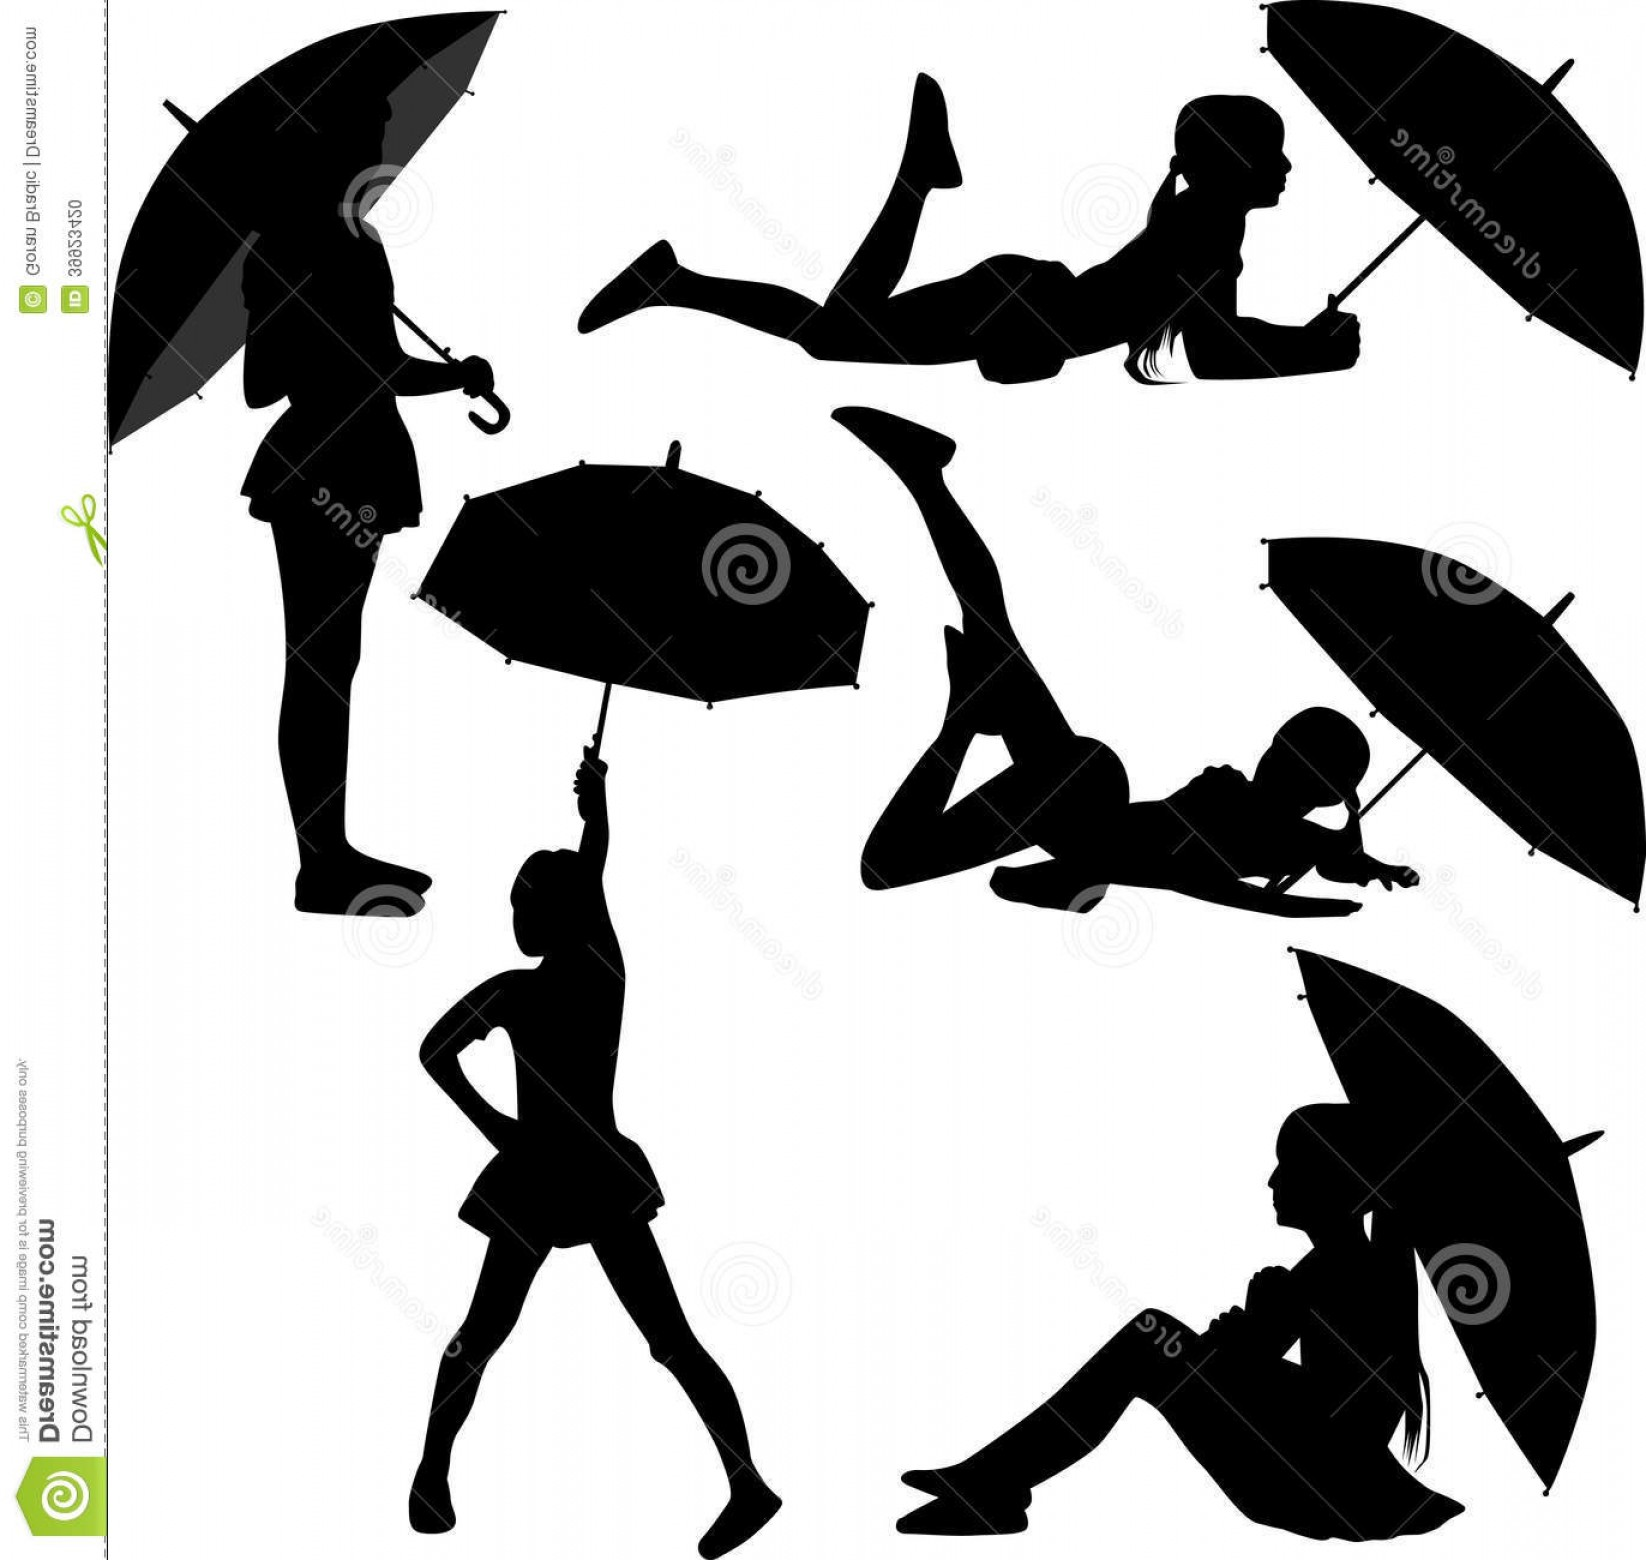 Umbrella Vector Black: Stock Photo Girl Dance Umbrella Silhouette Vector Image